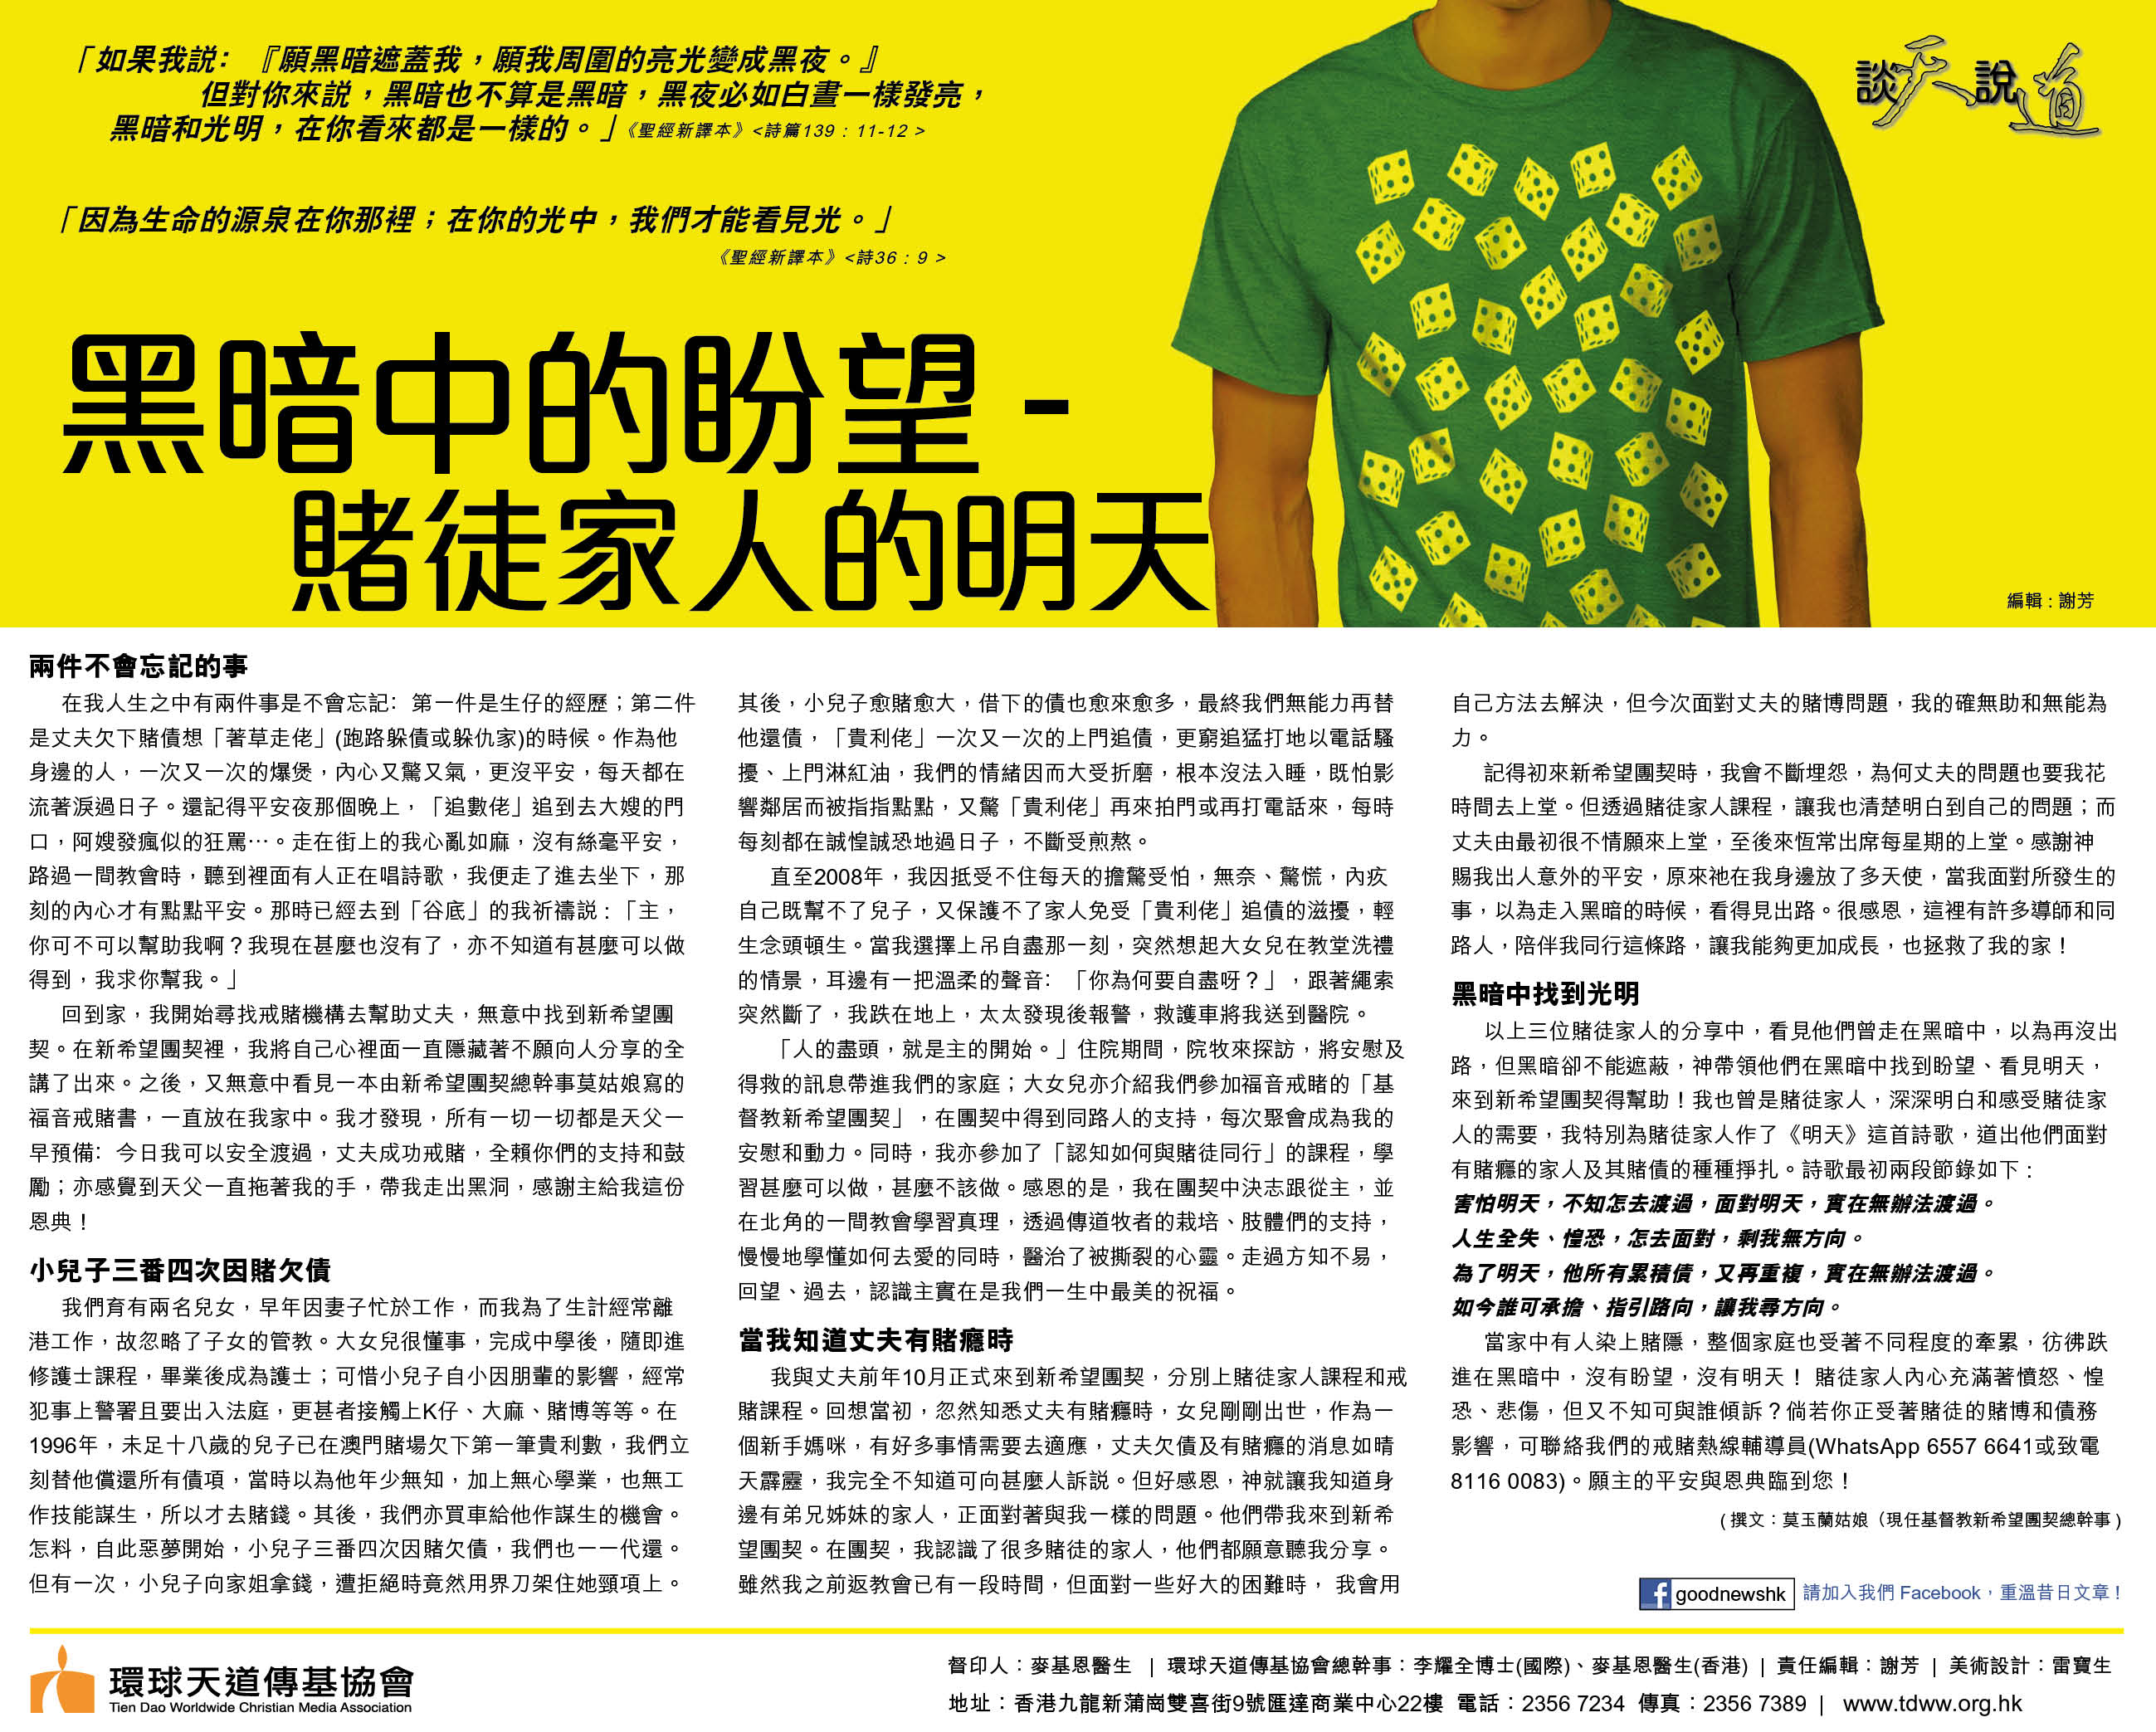 2019 tiandao article